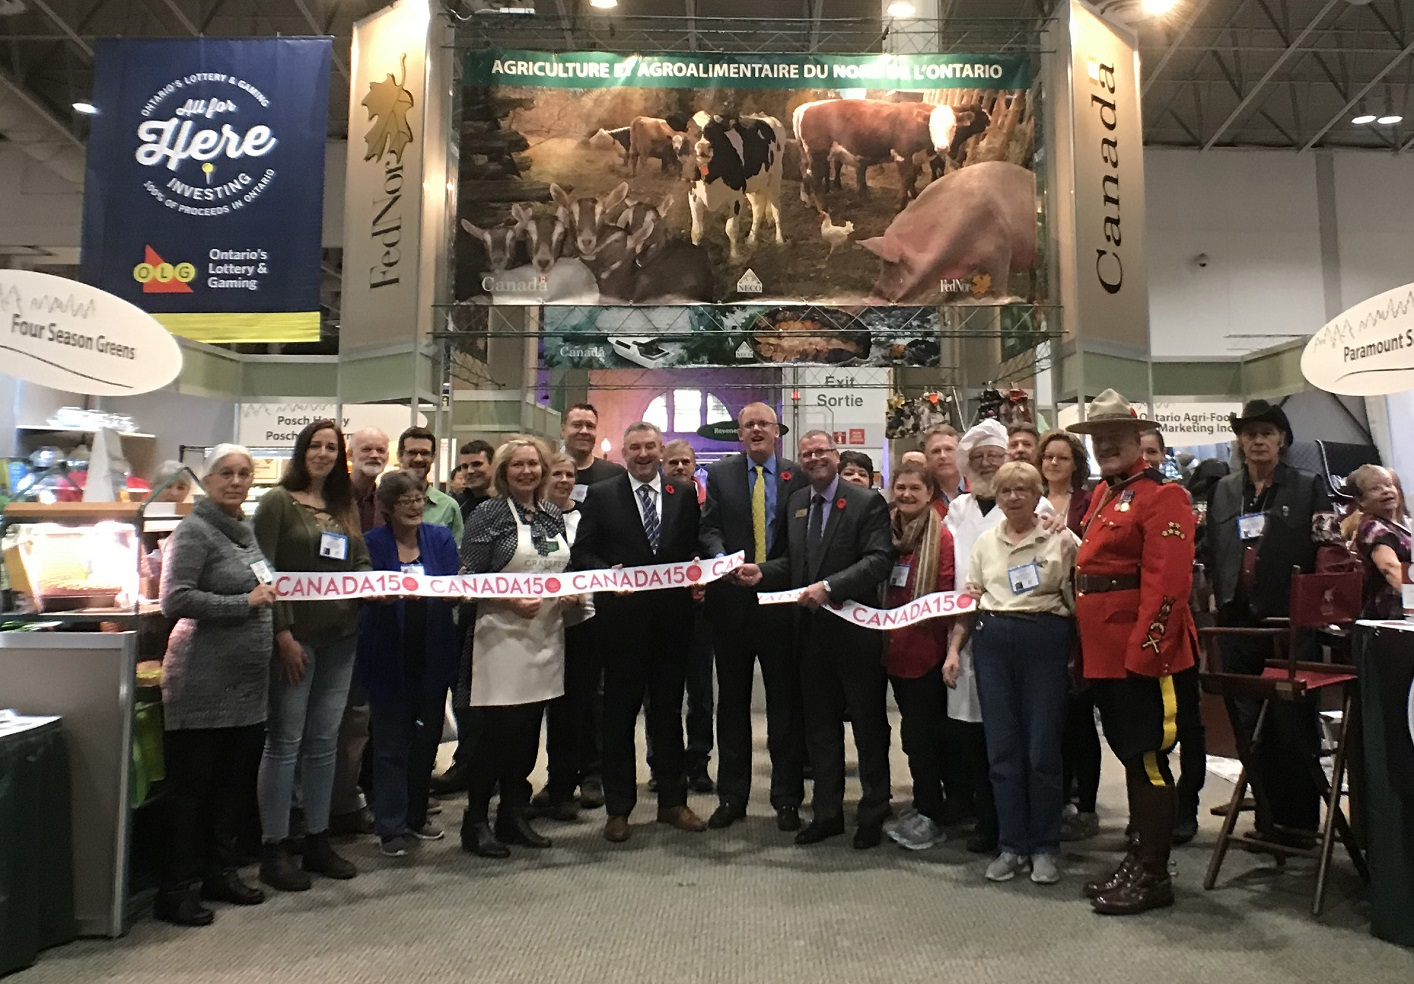 Exhibitors from across Northern Ontario, including Steve Bacon of Four Season Greens and Matt Richter of Best Ever Food (back row, at left) joined Guy Paquette of FedNor and representatives of Toronto's Royal Agricultural Winter Fair to officially open the FedNor-supported Northern Ontario Pavilion. (Photo: edNor)